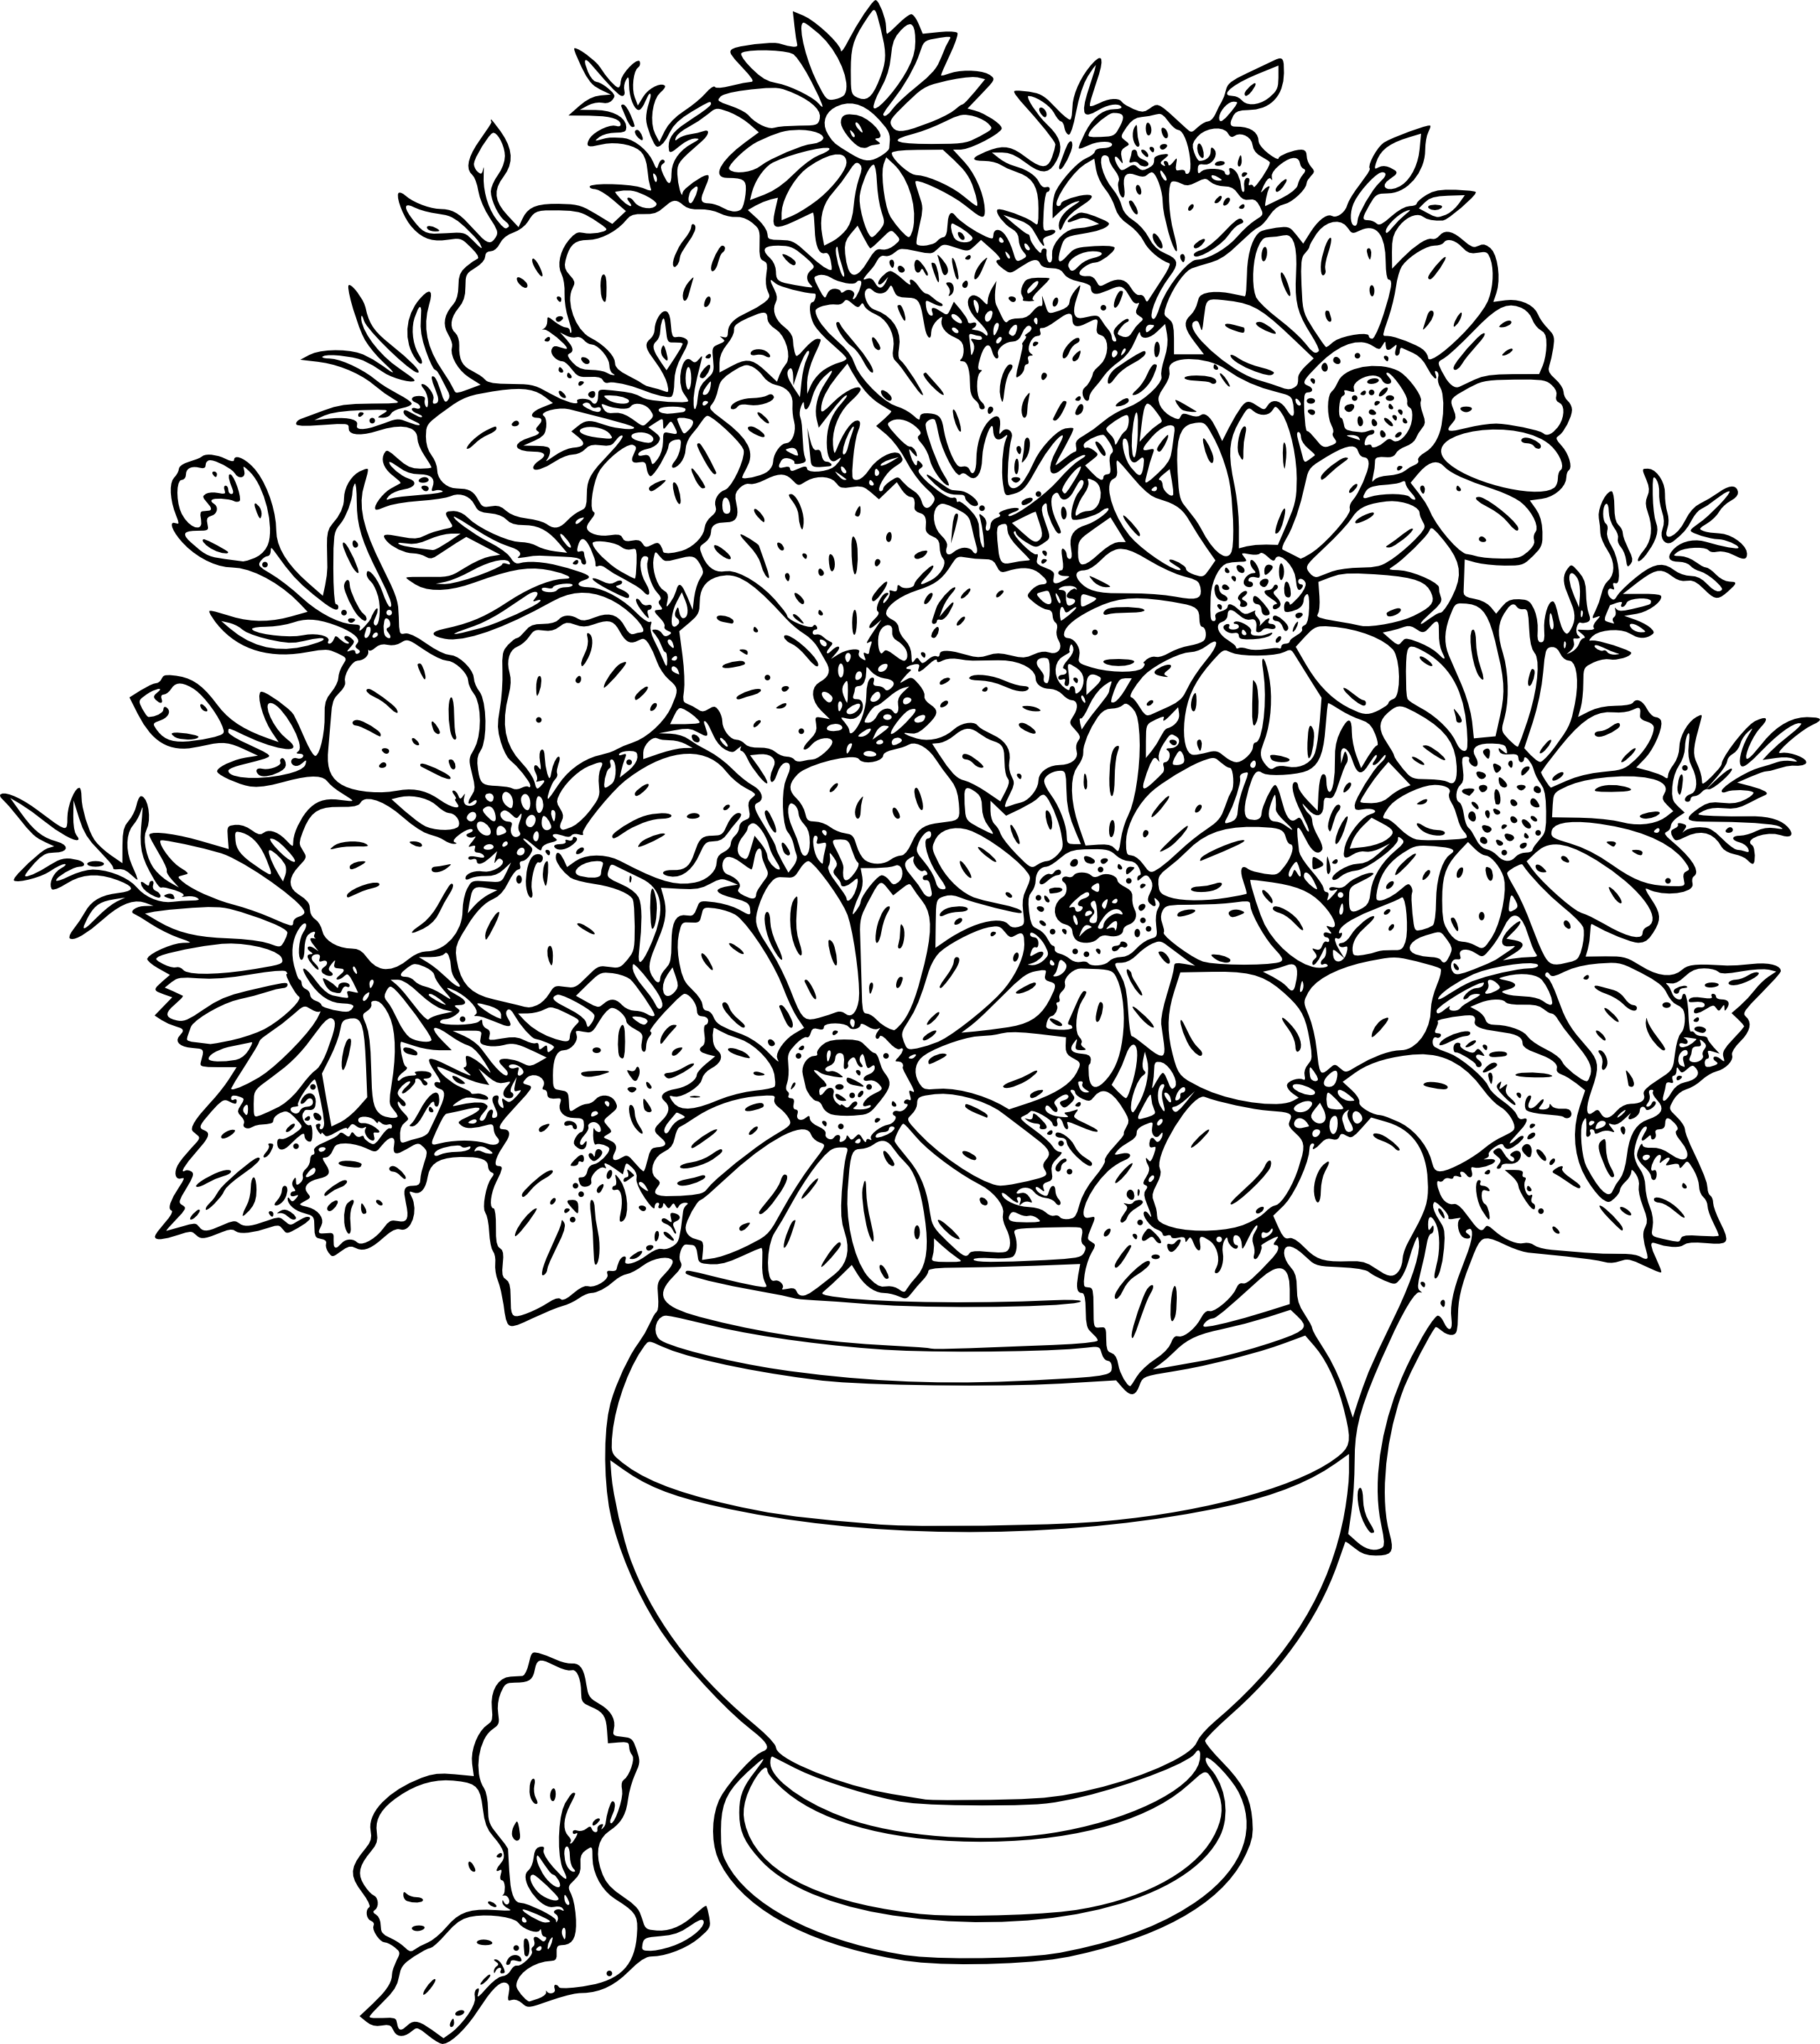 Line Drawing Of Flowers : Flowers line drawing images clipart best